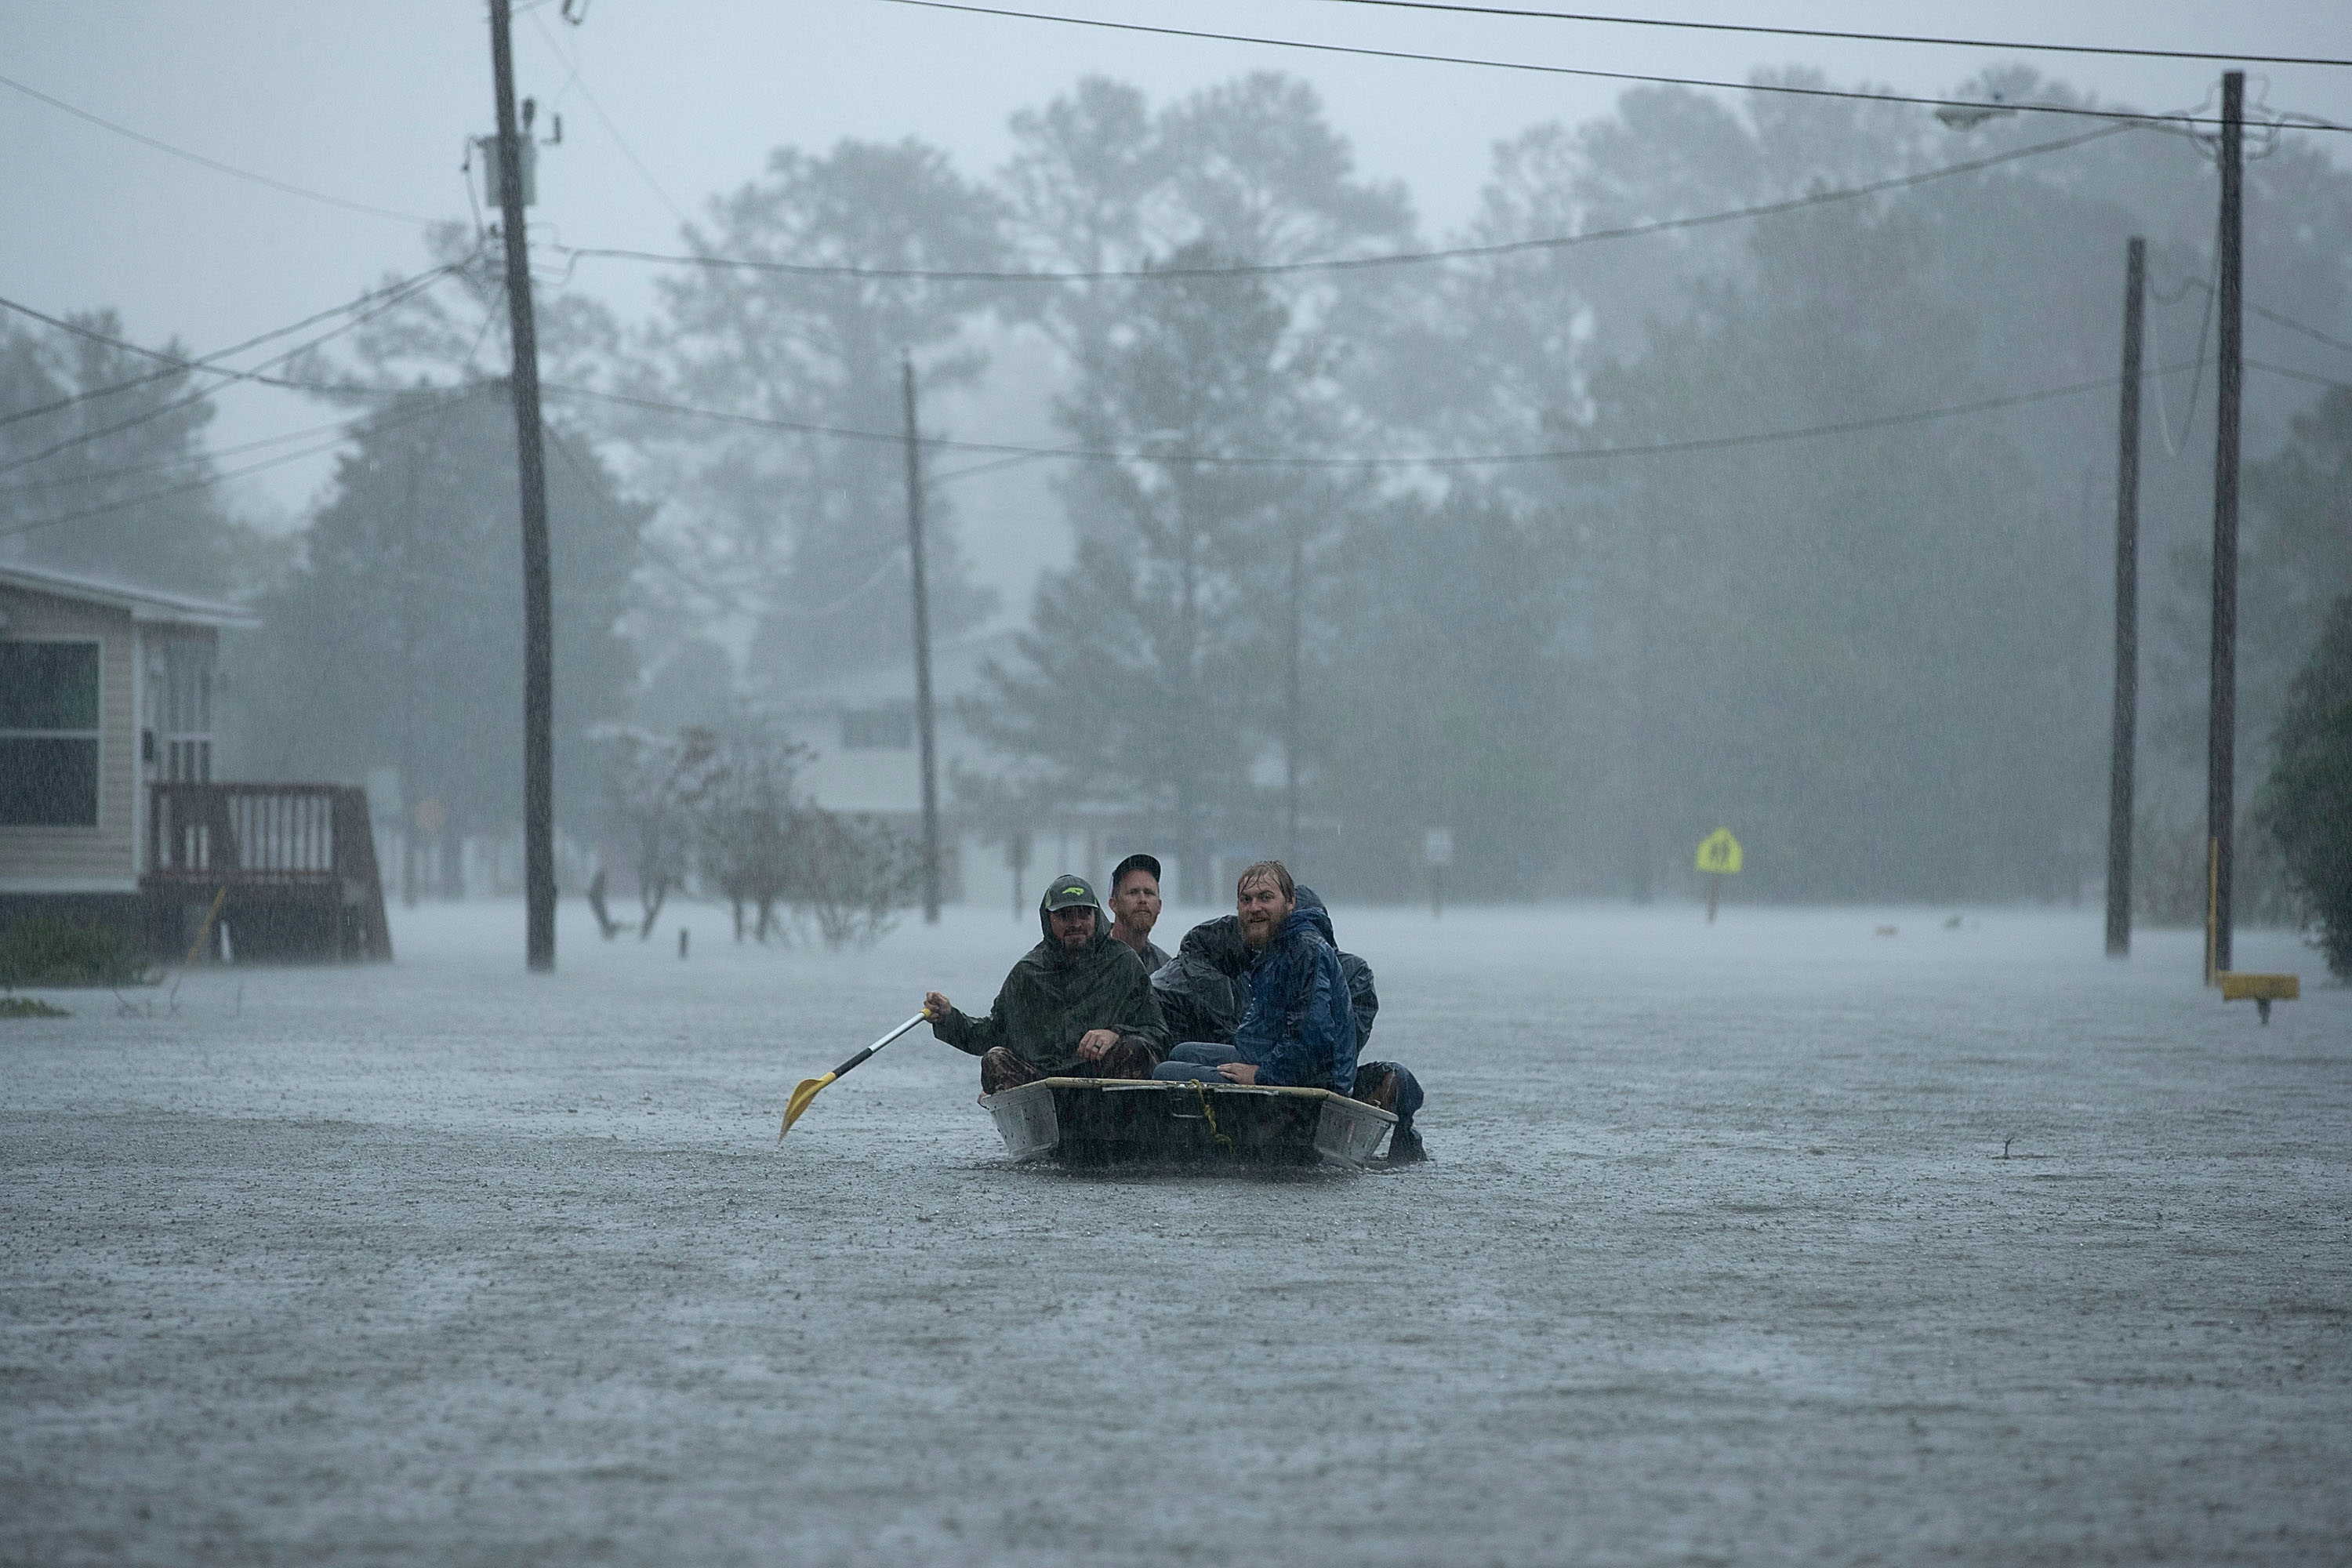 Volunteers from all over North Carolina help rescue residents from their flooded homes during Hurricane Florence September 14, 2018 in New Bern, North Carolina. Hurricane Florence made landfall in North Carolina as a Category 1 storm and flooding from the heavy rain is forcing hundreds of people to call for emergency rescues in the area around New Bern, North Carolina, which sits at the confluence of the Nuese and Trent rivers. The storm has since been downgraded to a tropical storm.